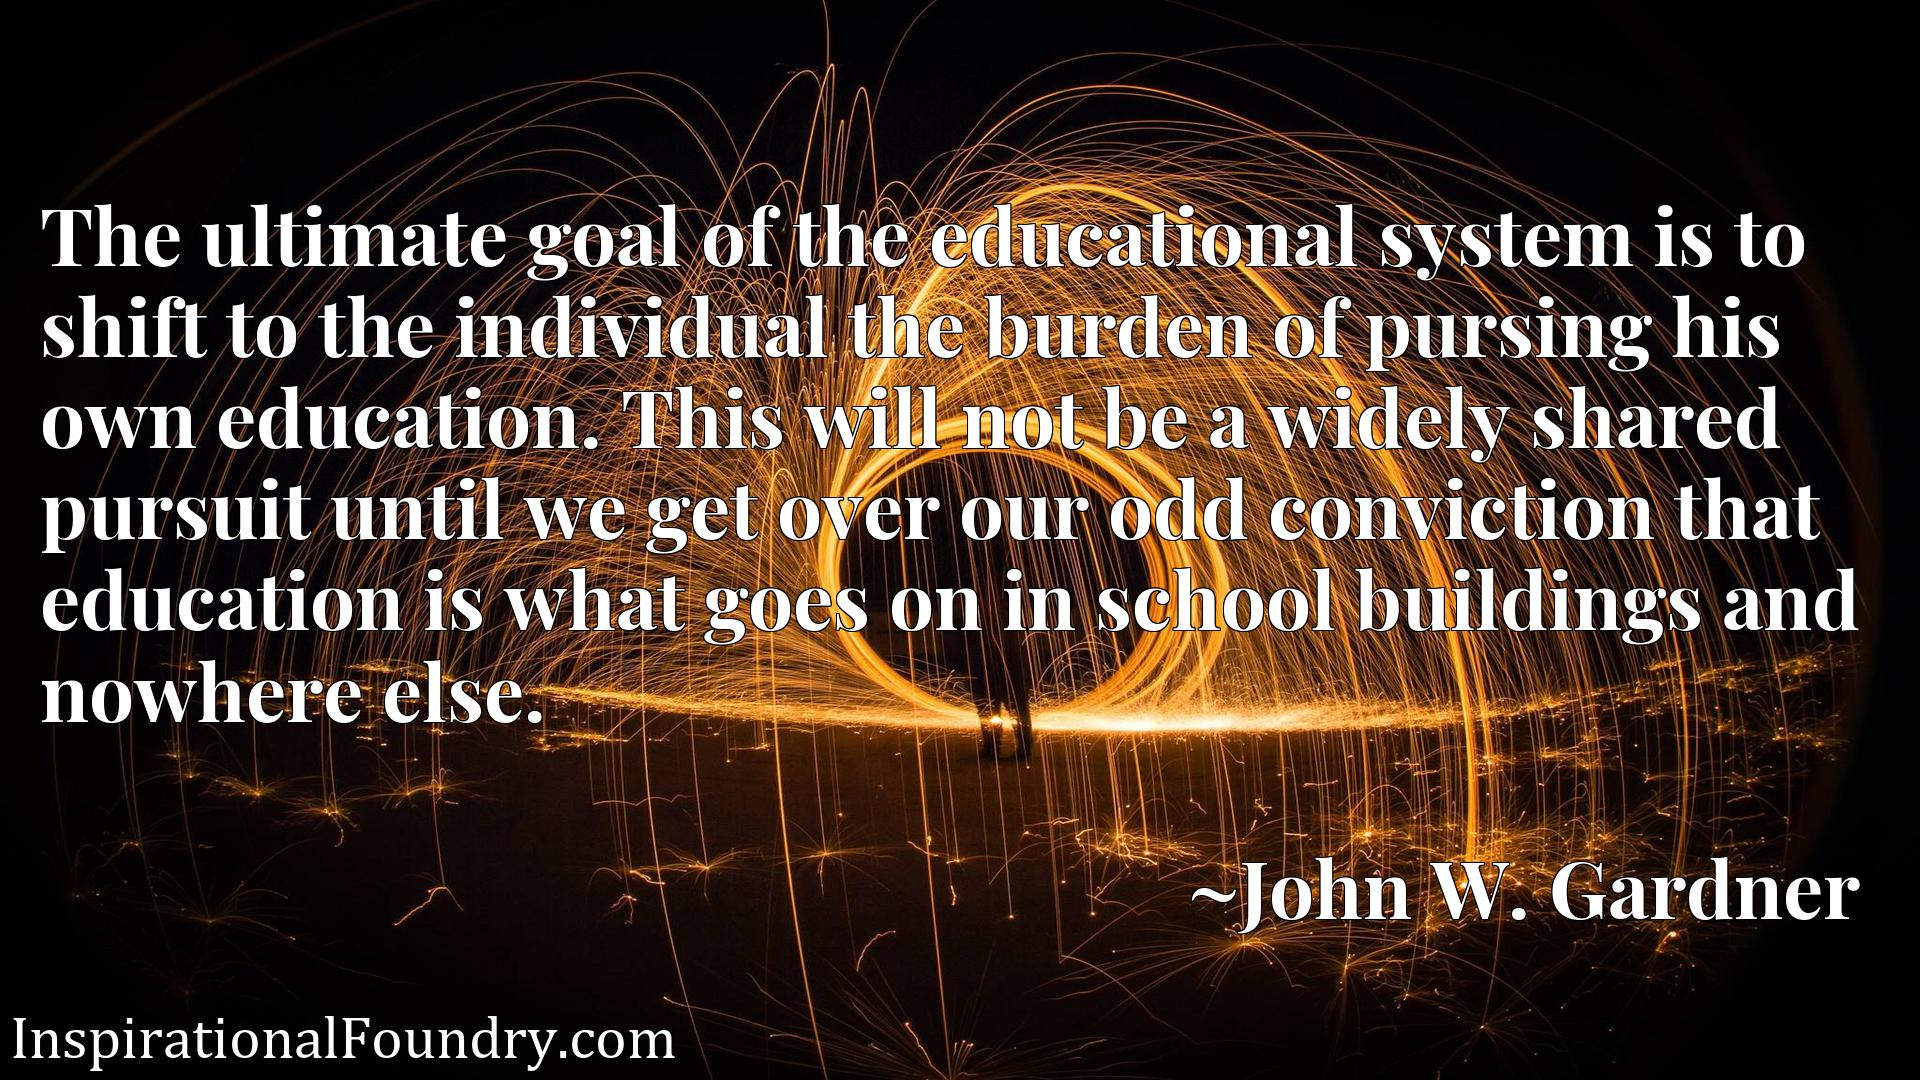 The ultimate goal of the educational system is to shift to the individual the burden of pursing his own education. This will not be a widely shared pursuit until we get over our odd conviction that education is what goes on in school buildings and nowhere else.